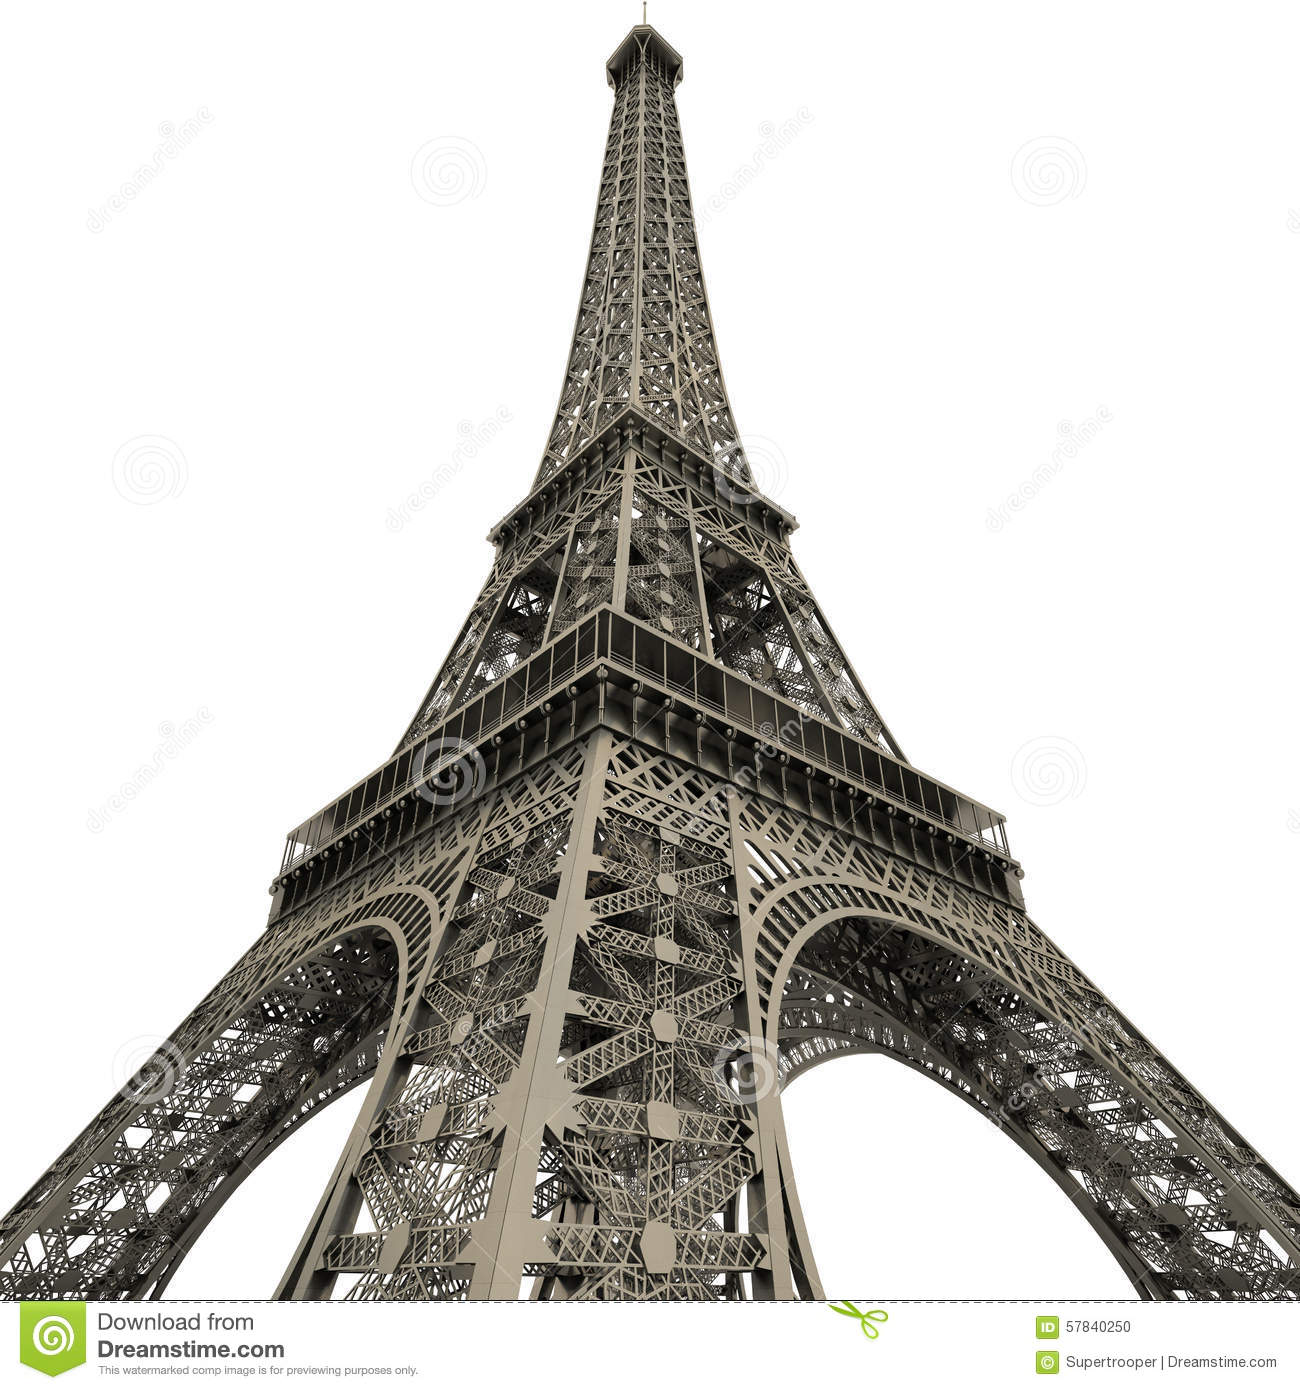 an in depth look at the eiffel tower in paris france Located on the champ de mars in paris, france, the eiffel tower is one of the most well known structures in the world the eiffel tower was originally built as the entrance arch for the world's fair in 1889.